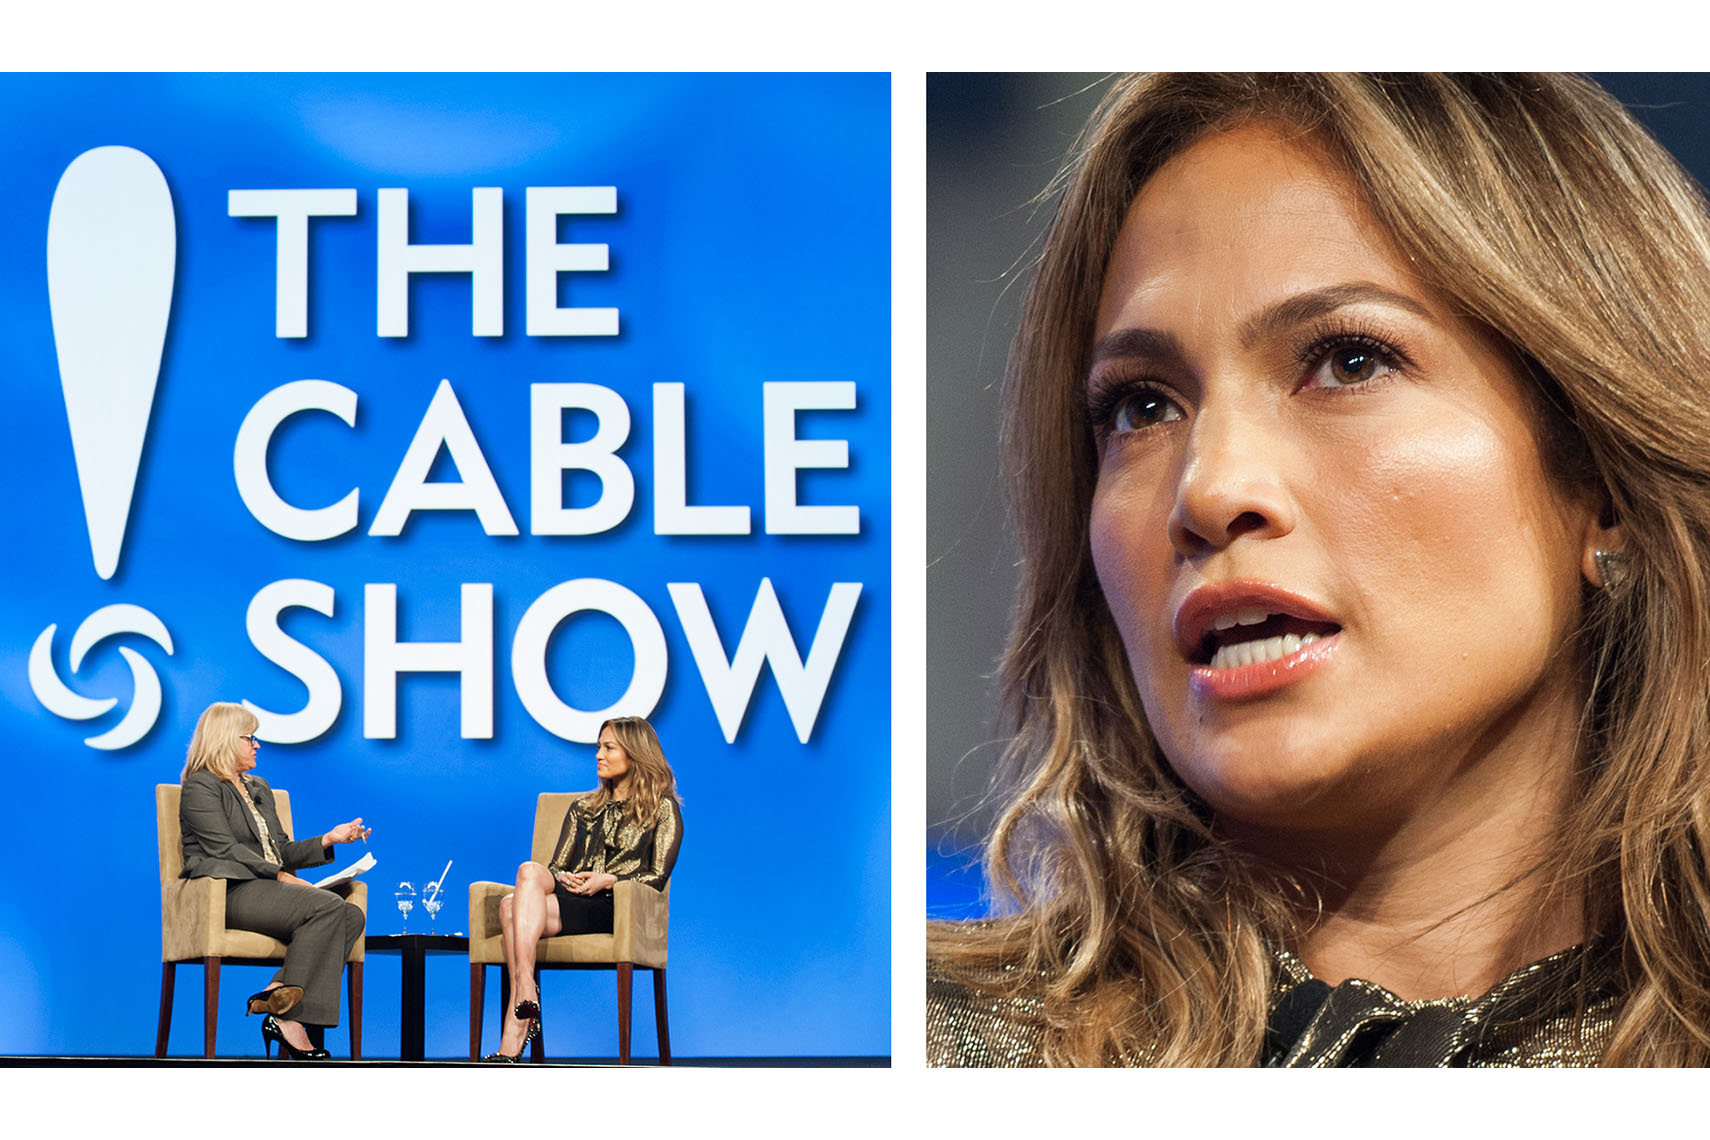 Jennifer Lopez speaking for NuvoTV